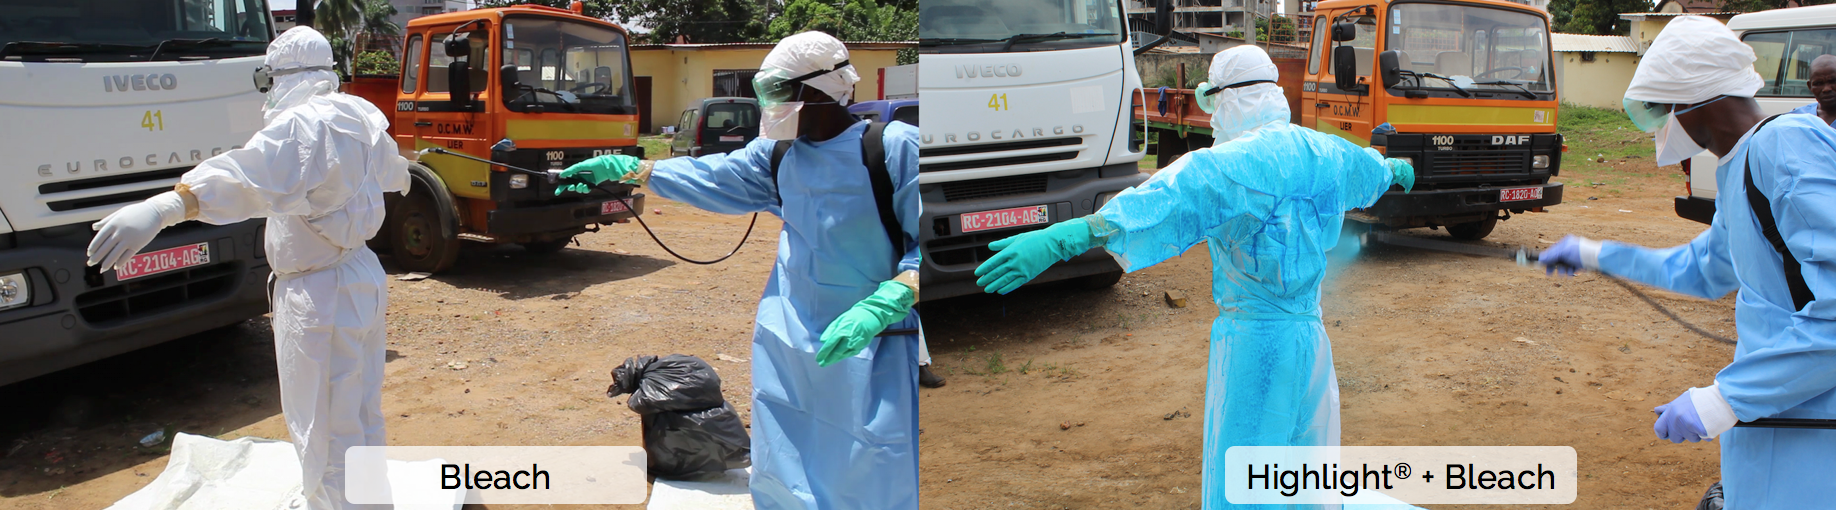 Healthcare personnel conduct spray decontamination doffing procedures with chlorine solution alone (left) and with Highlight®-enhanced chlorine solution (right) in Conakry, Guinea.